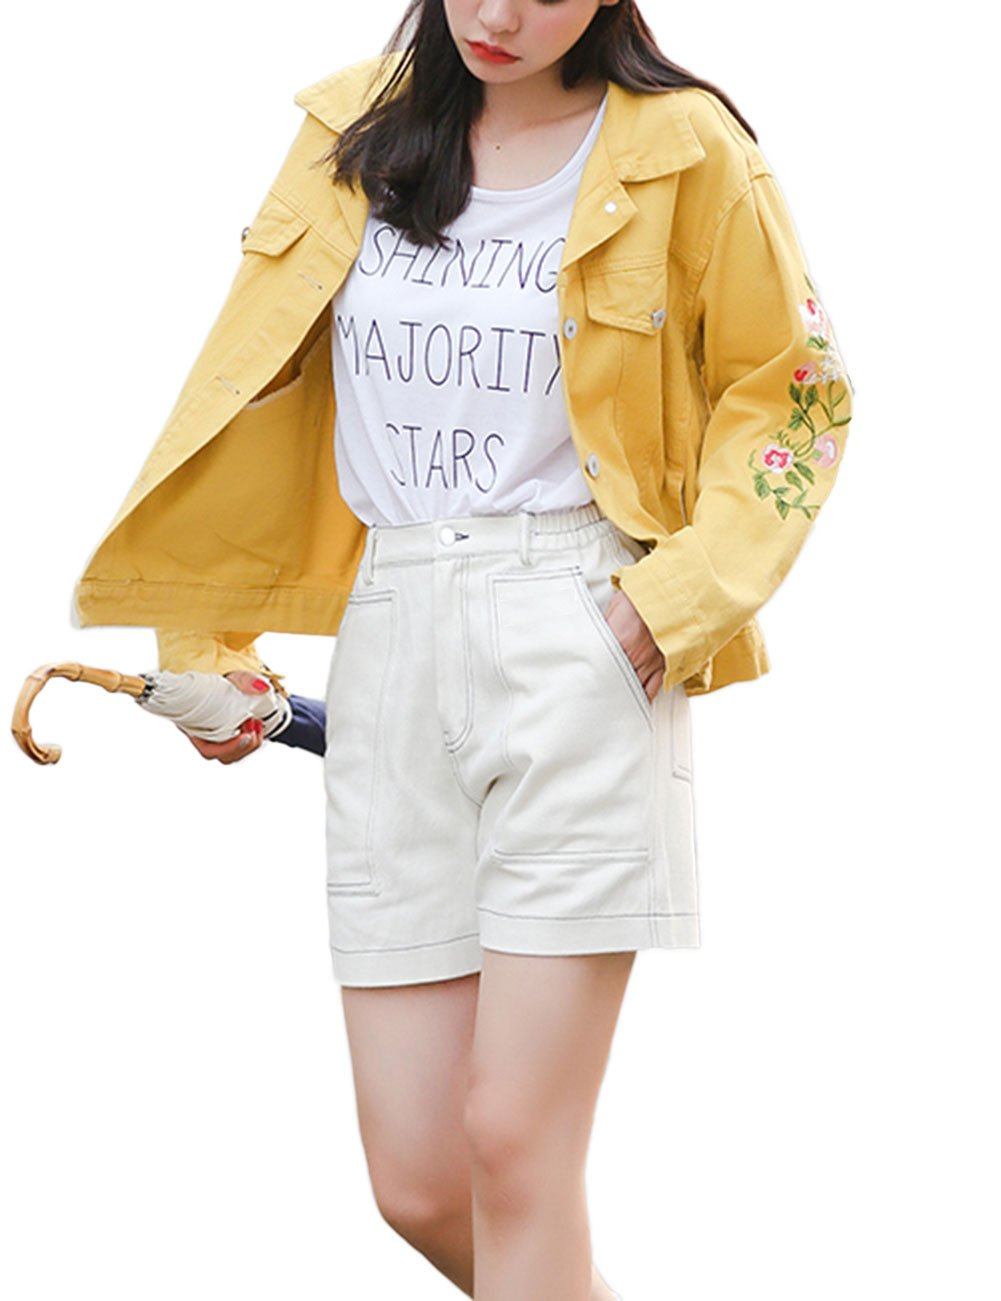 ZLSLZ Womens Girls Vintage Loose Fit Floral Embroidery Boyfriend Denim Jean Jacket Coat Outerwear Yellow M